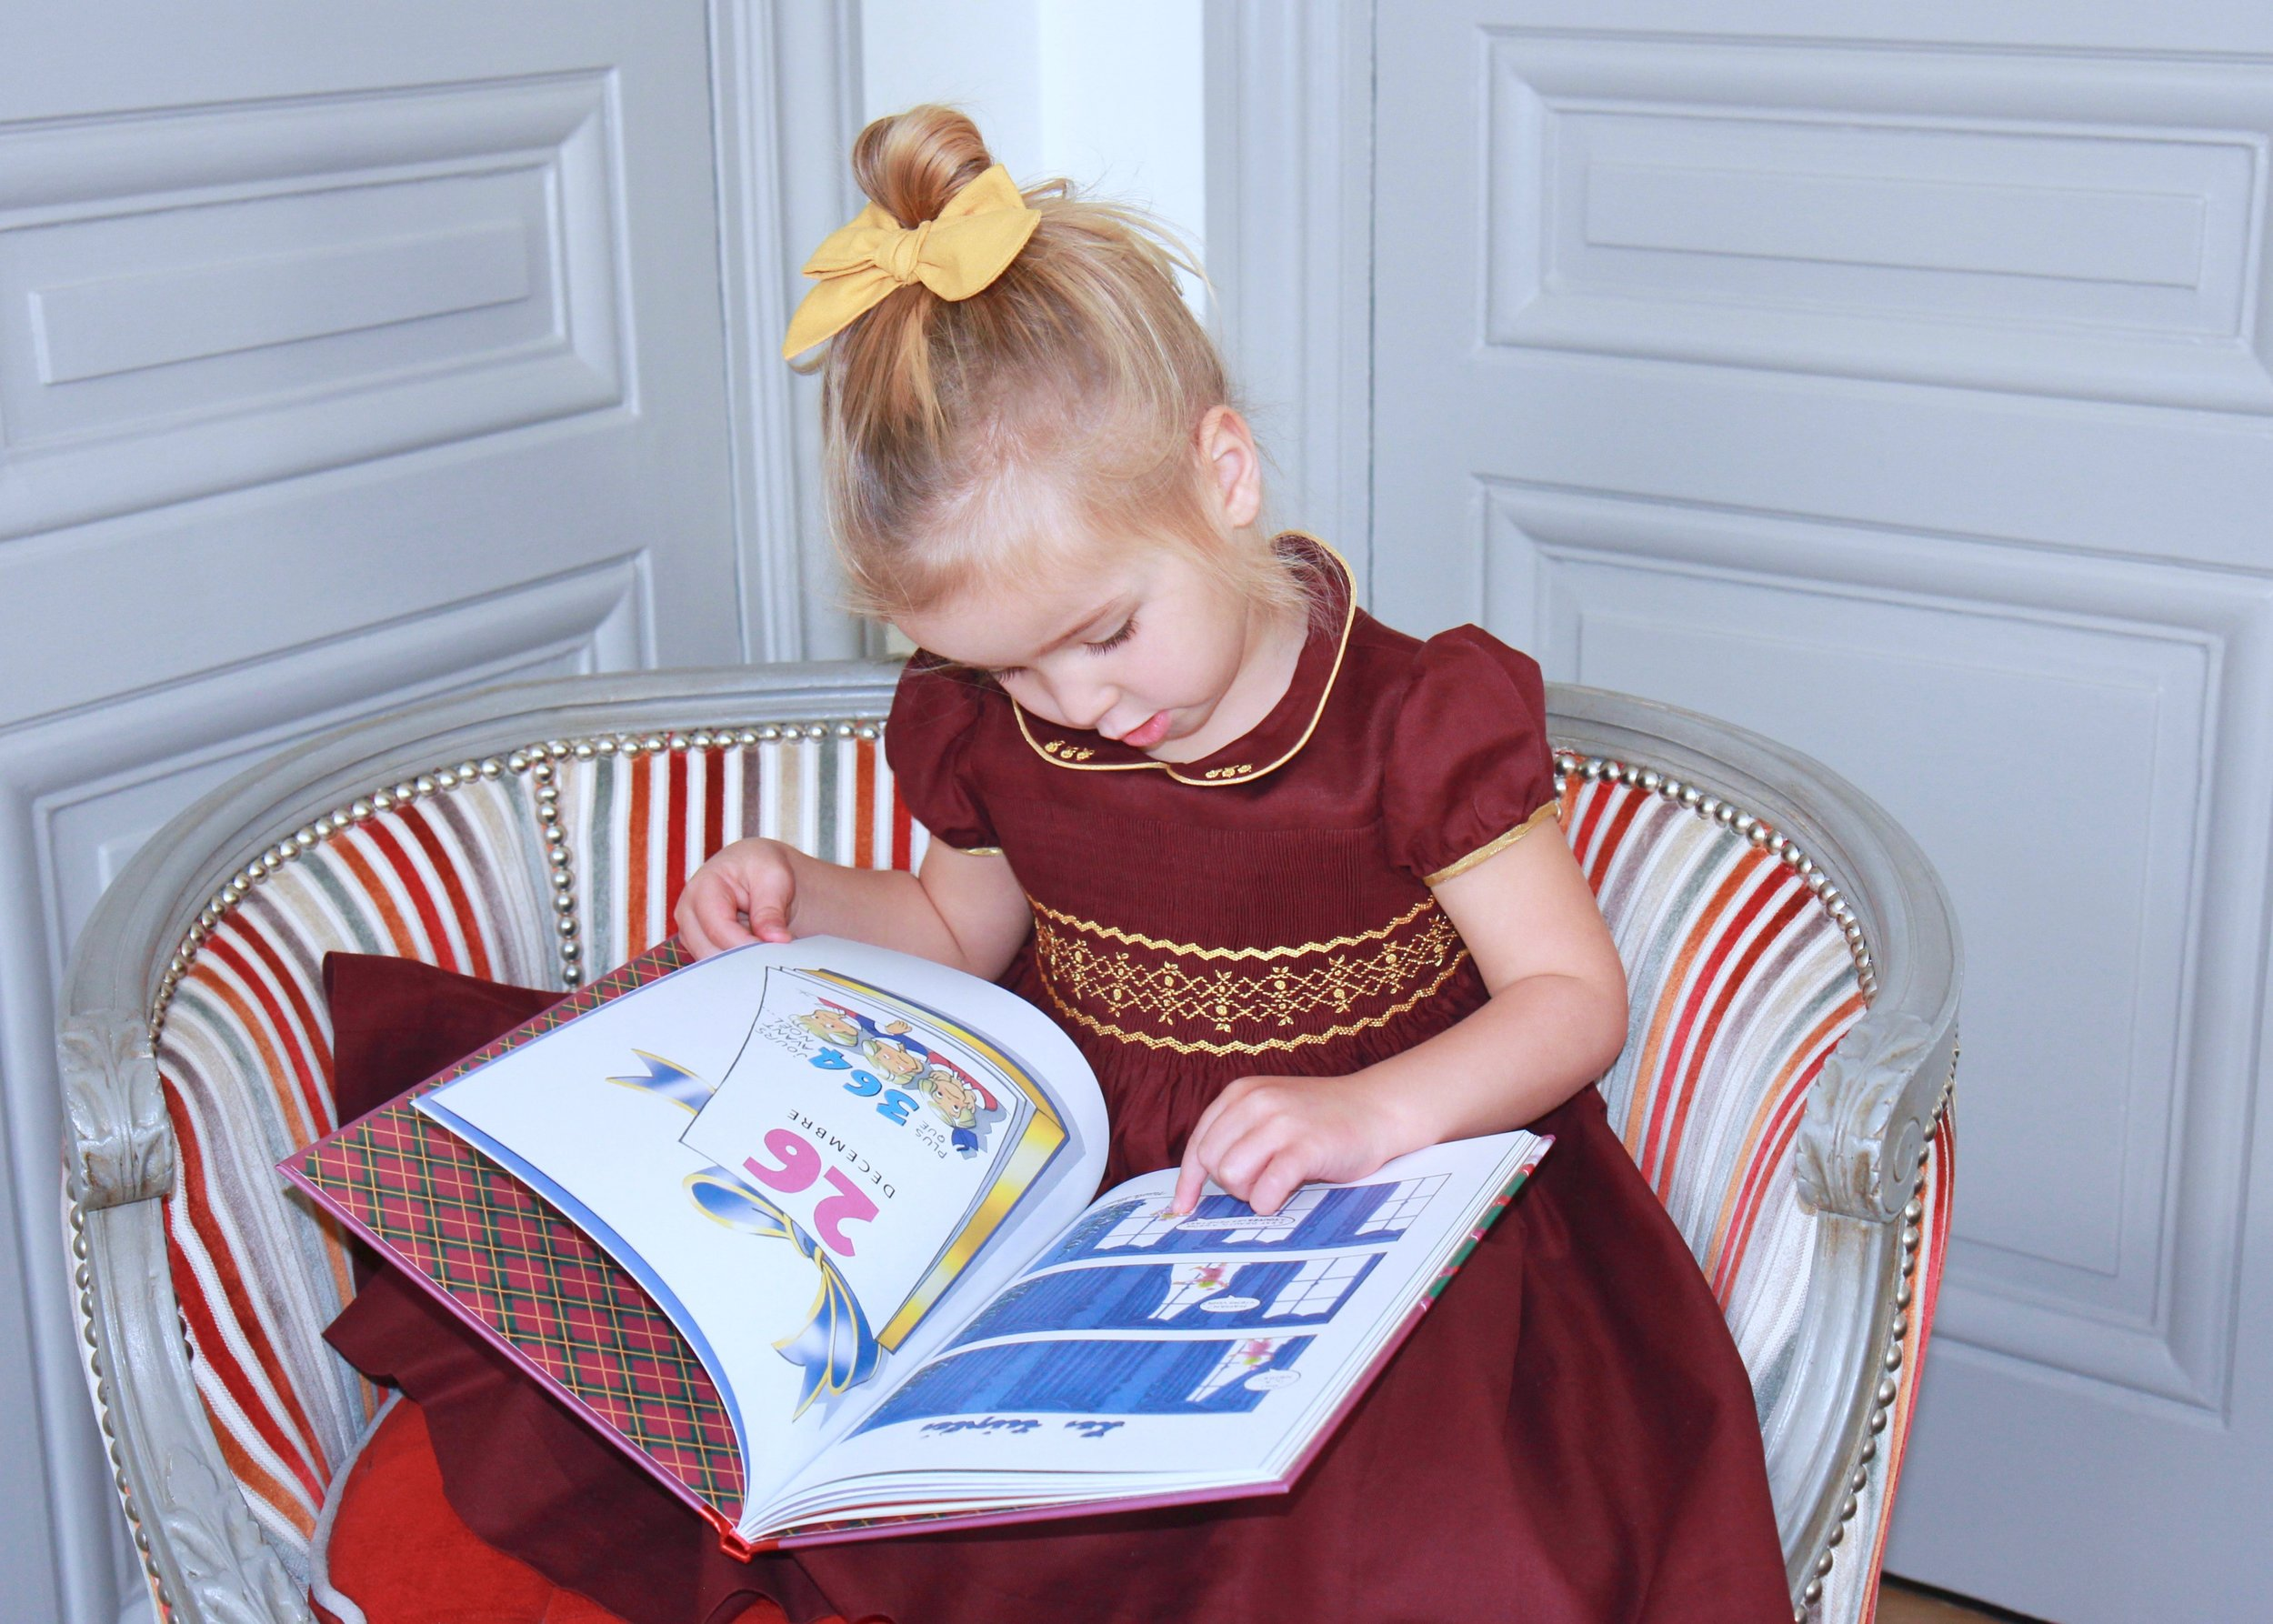 Les Triplés - Paris kids boutique